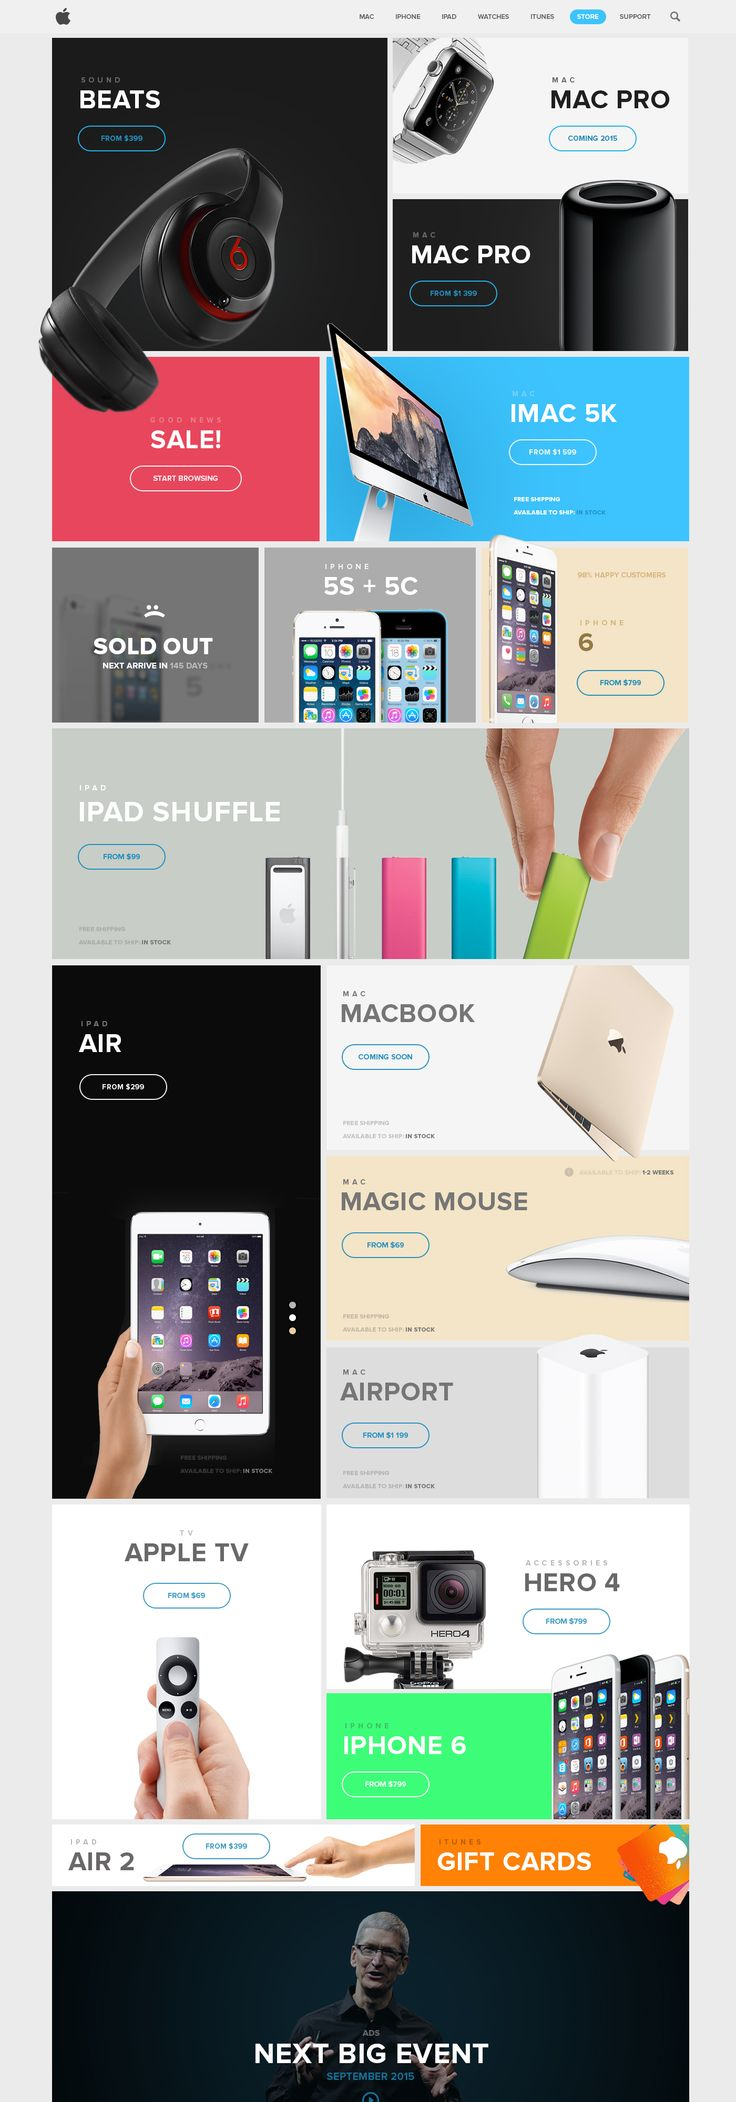 Apple Store Redesign by Vitali Zakharoff